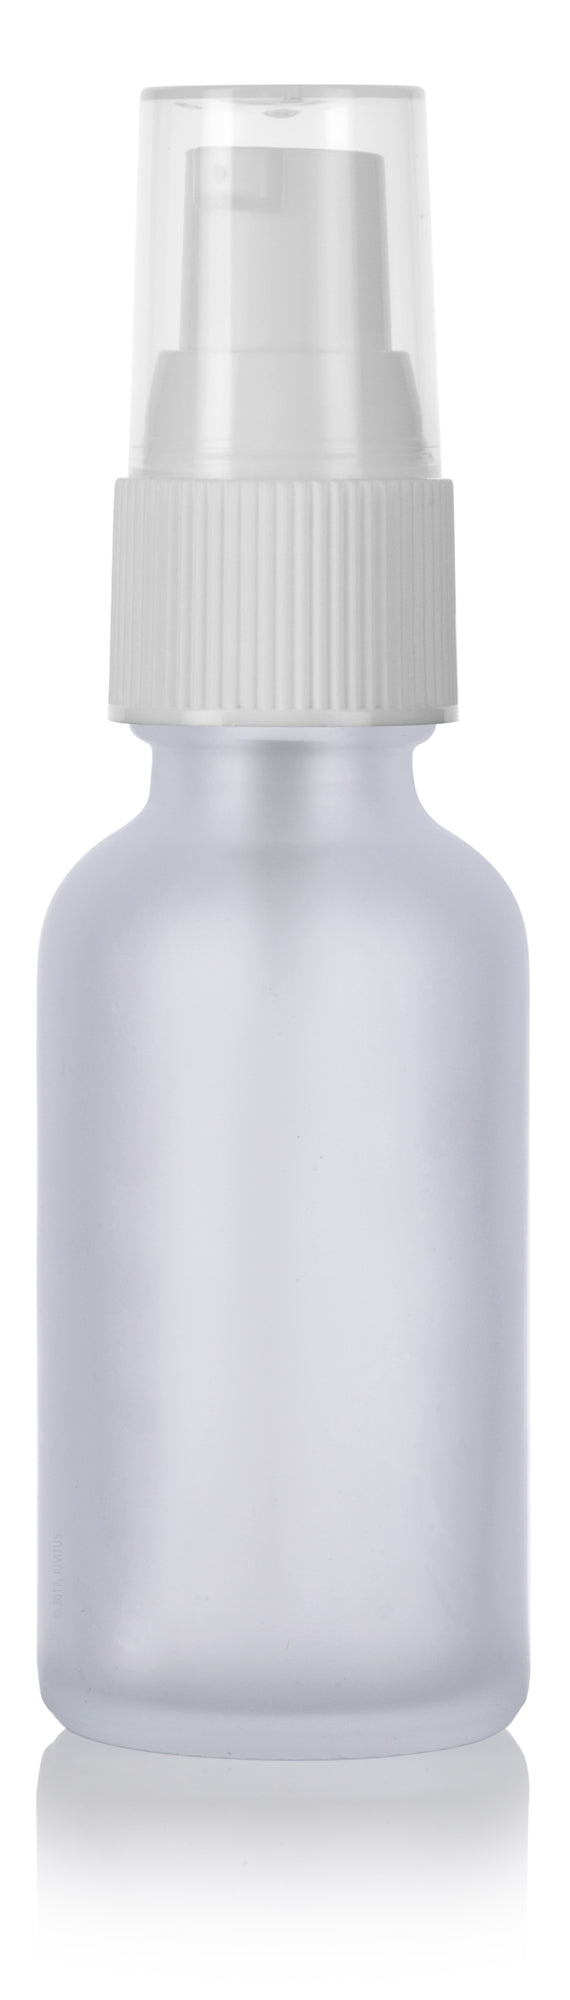 Frosted Clear Glass Boston Round Treatment Pump Bottle with White Top - 1 oz / 30 ml